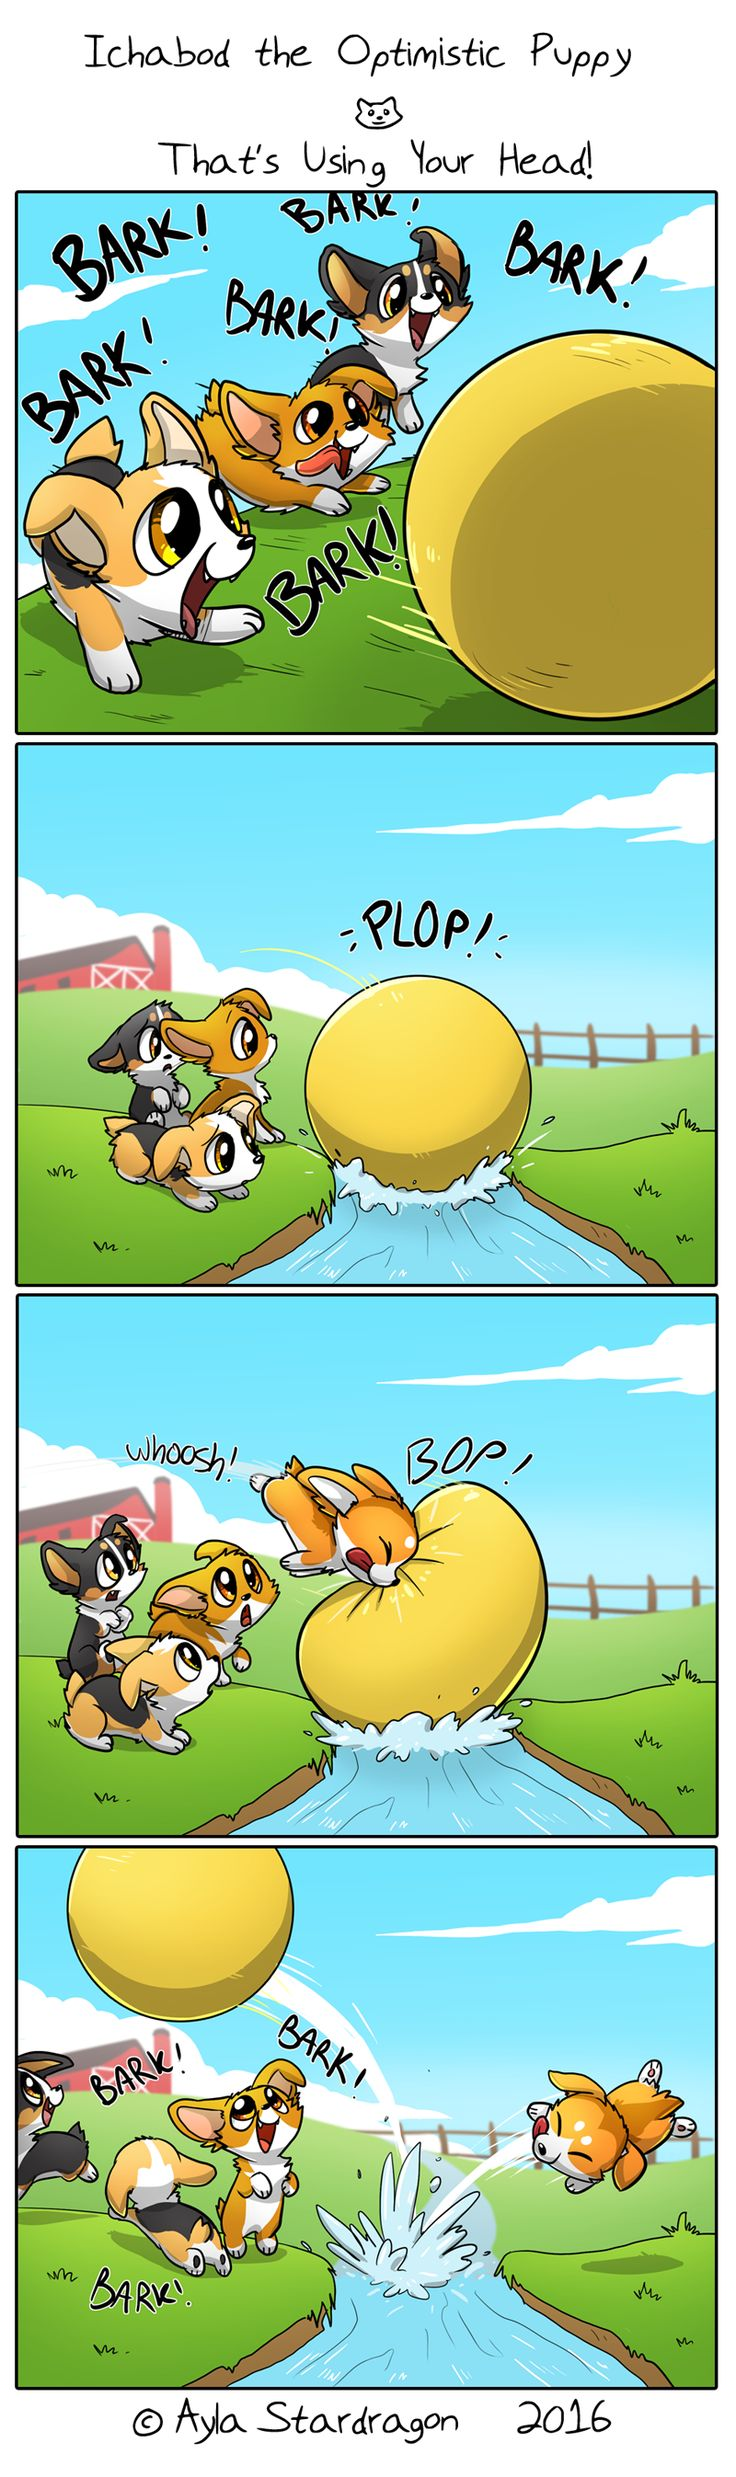 Ichabod the Optimistic Canine :: That's Using Your Head! | Tapastic Comics - image 1